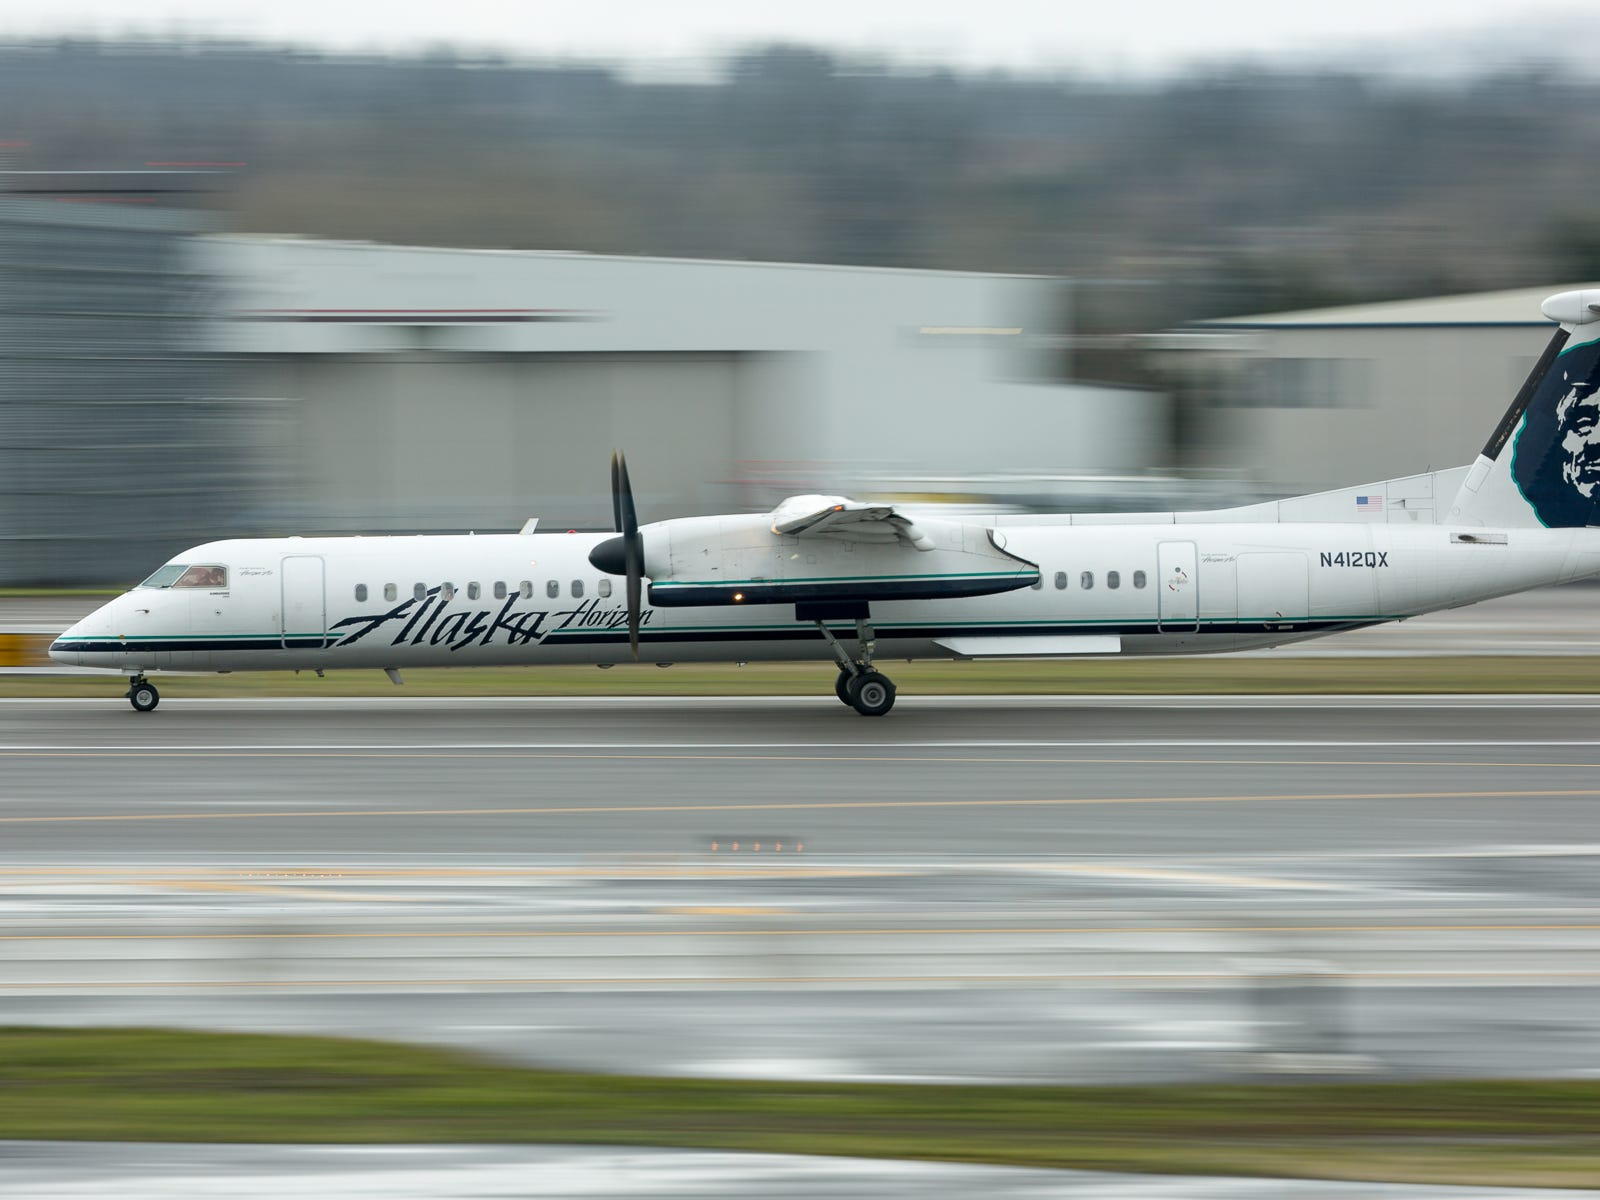 An Alaska Airlines Bombardier Q400 takes off from Portland International Airport in December 2018.